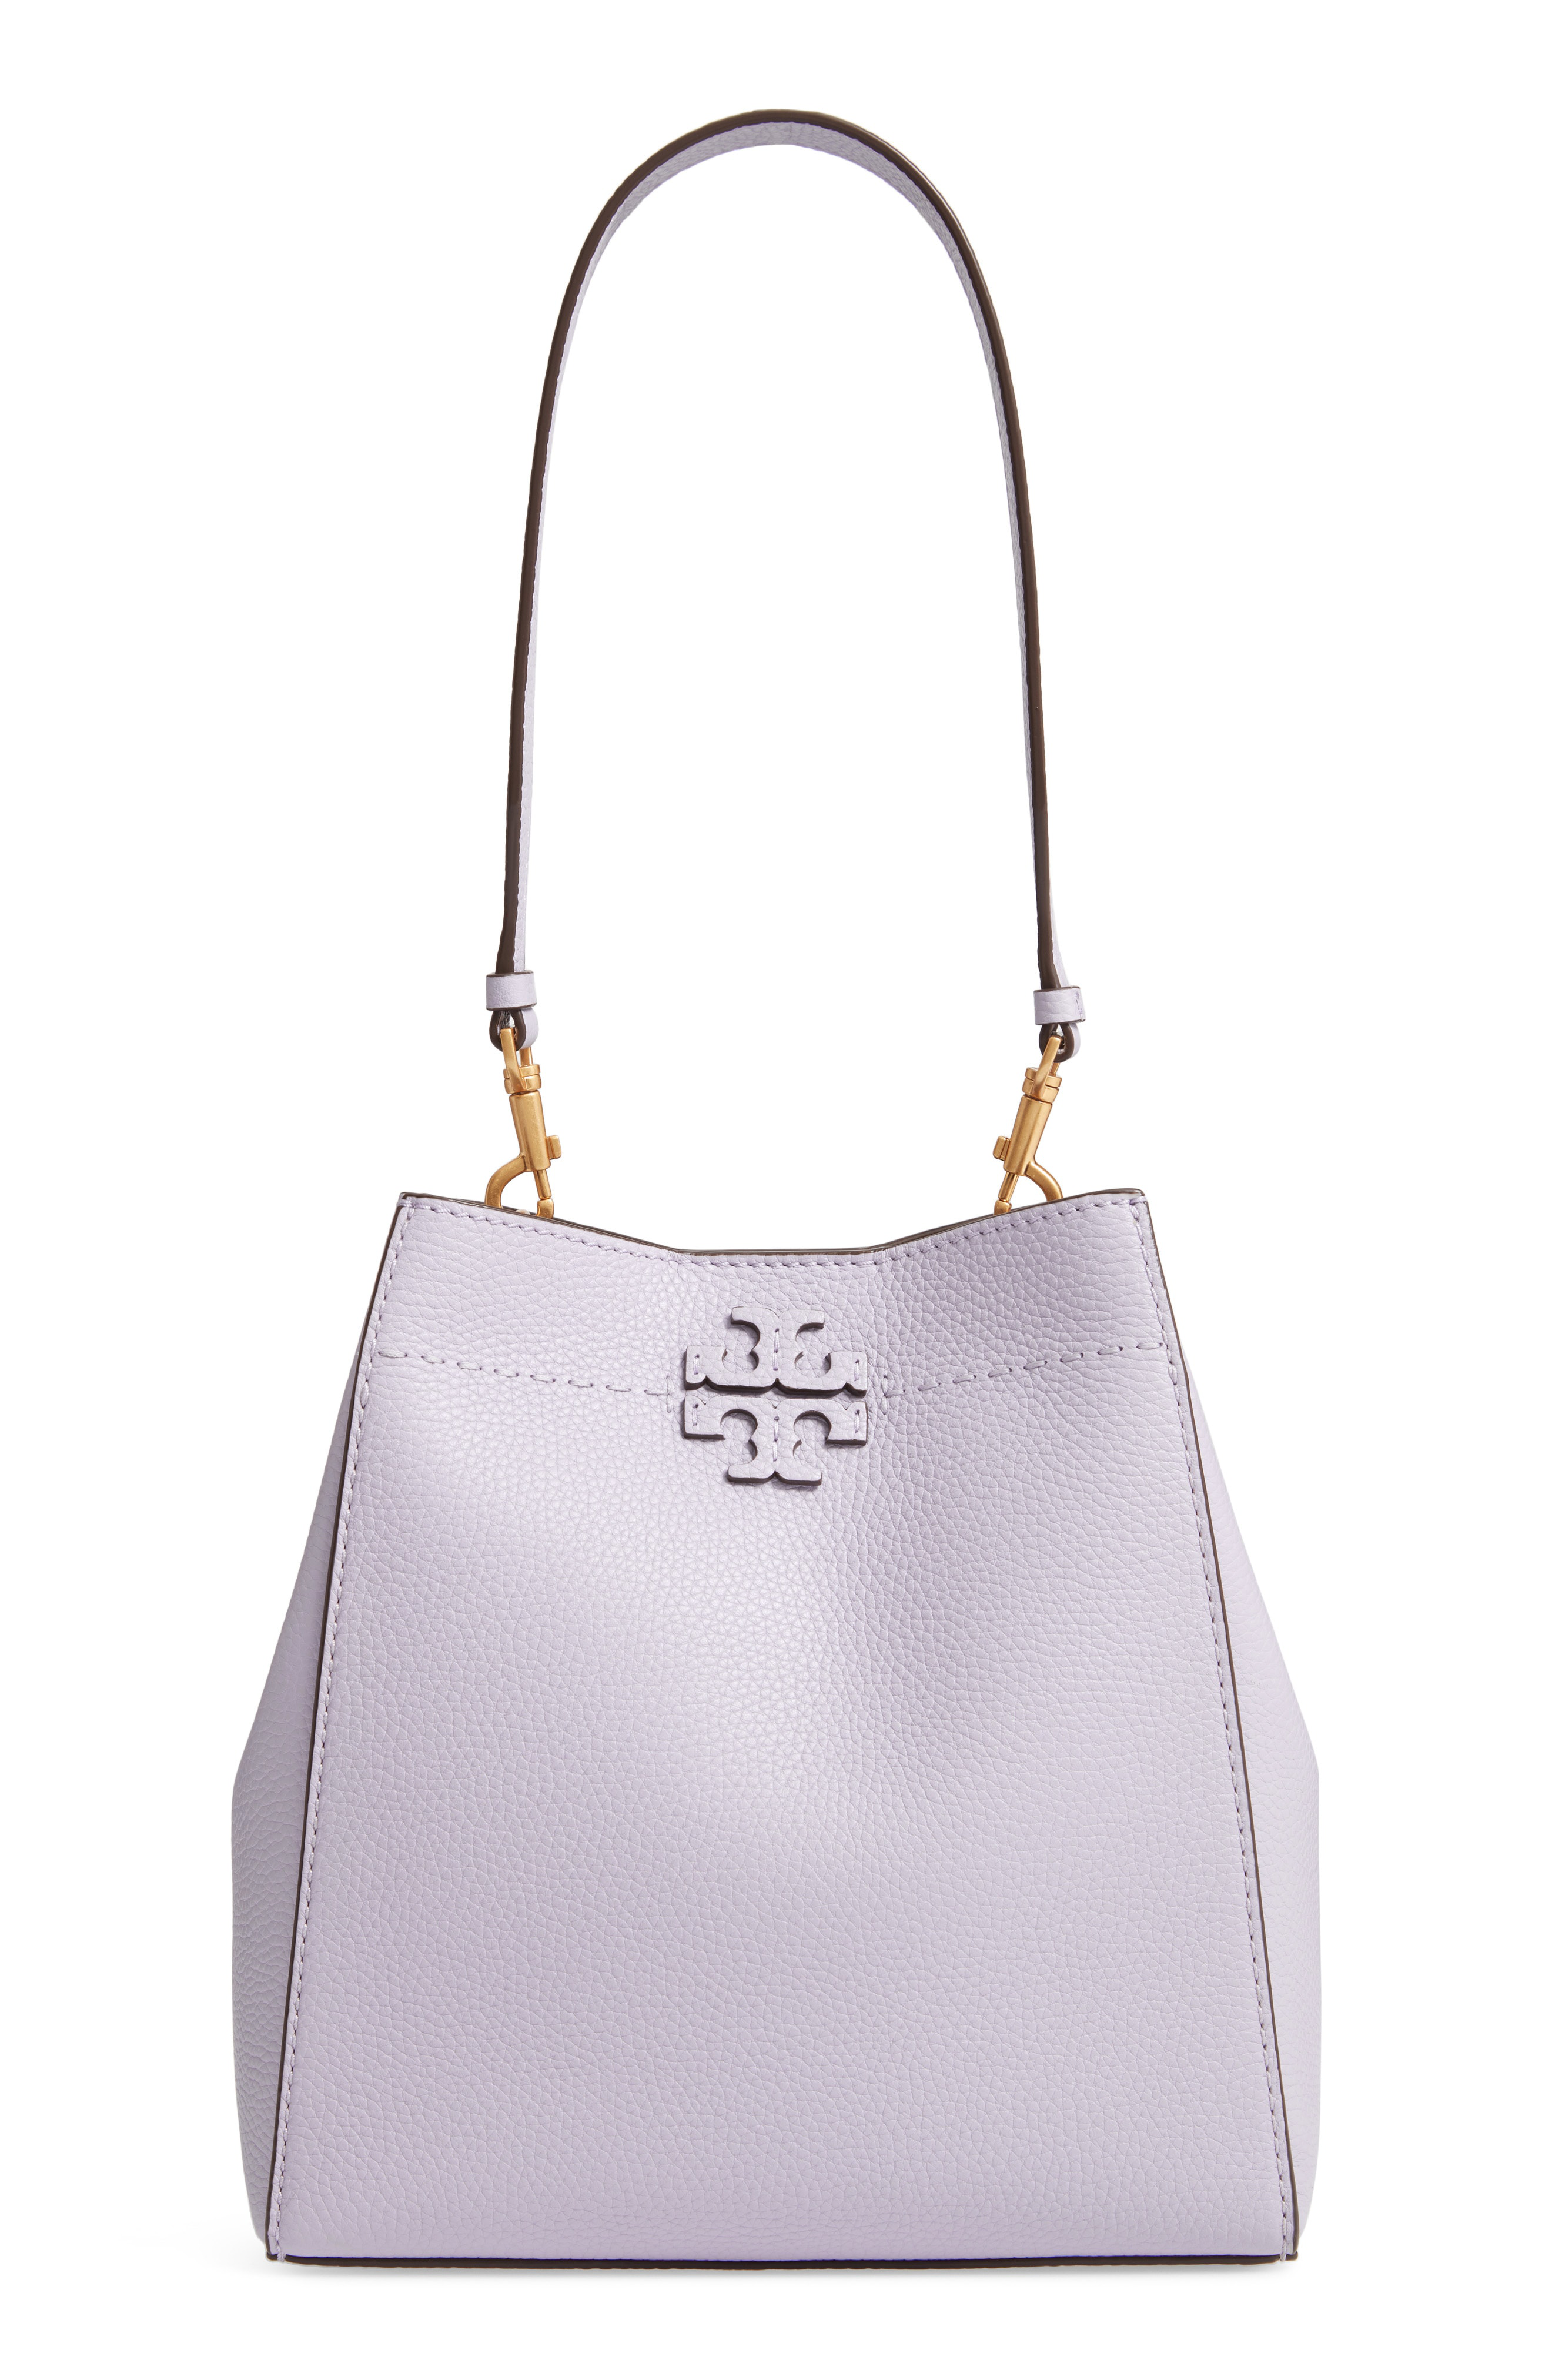 0c8fc539600d Tory Burch Mcgraw Leather Hobo - Purple In Pale Violet